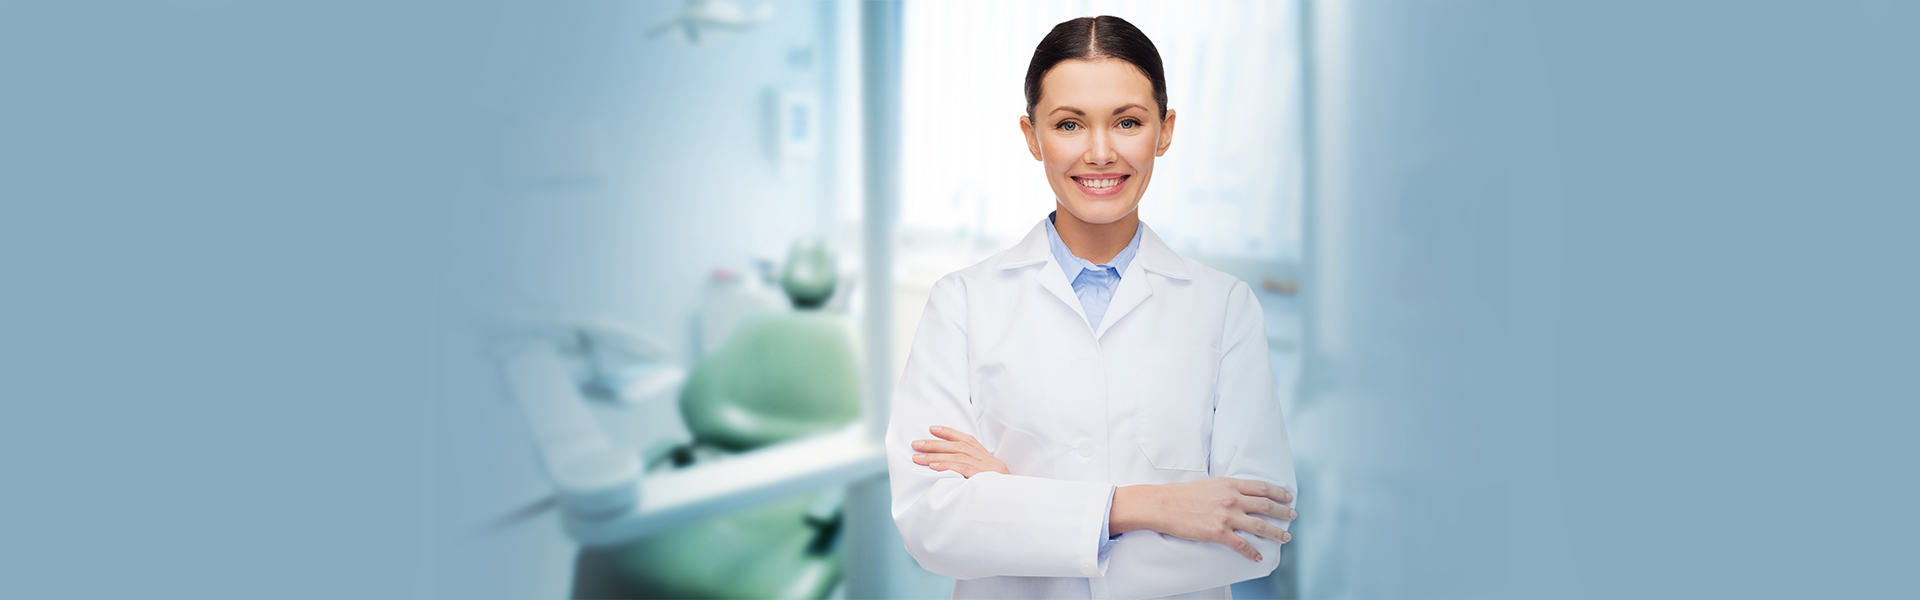 Do Emergency Dentists Accept Urgent Care Patients Whenever They Arrive?